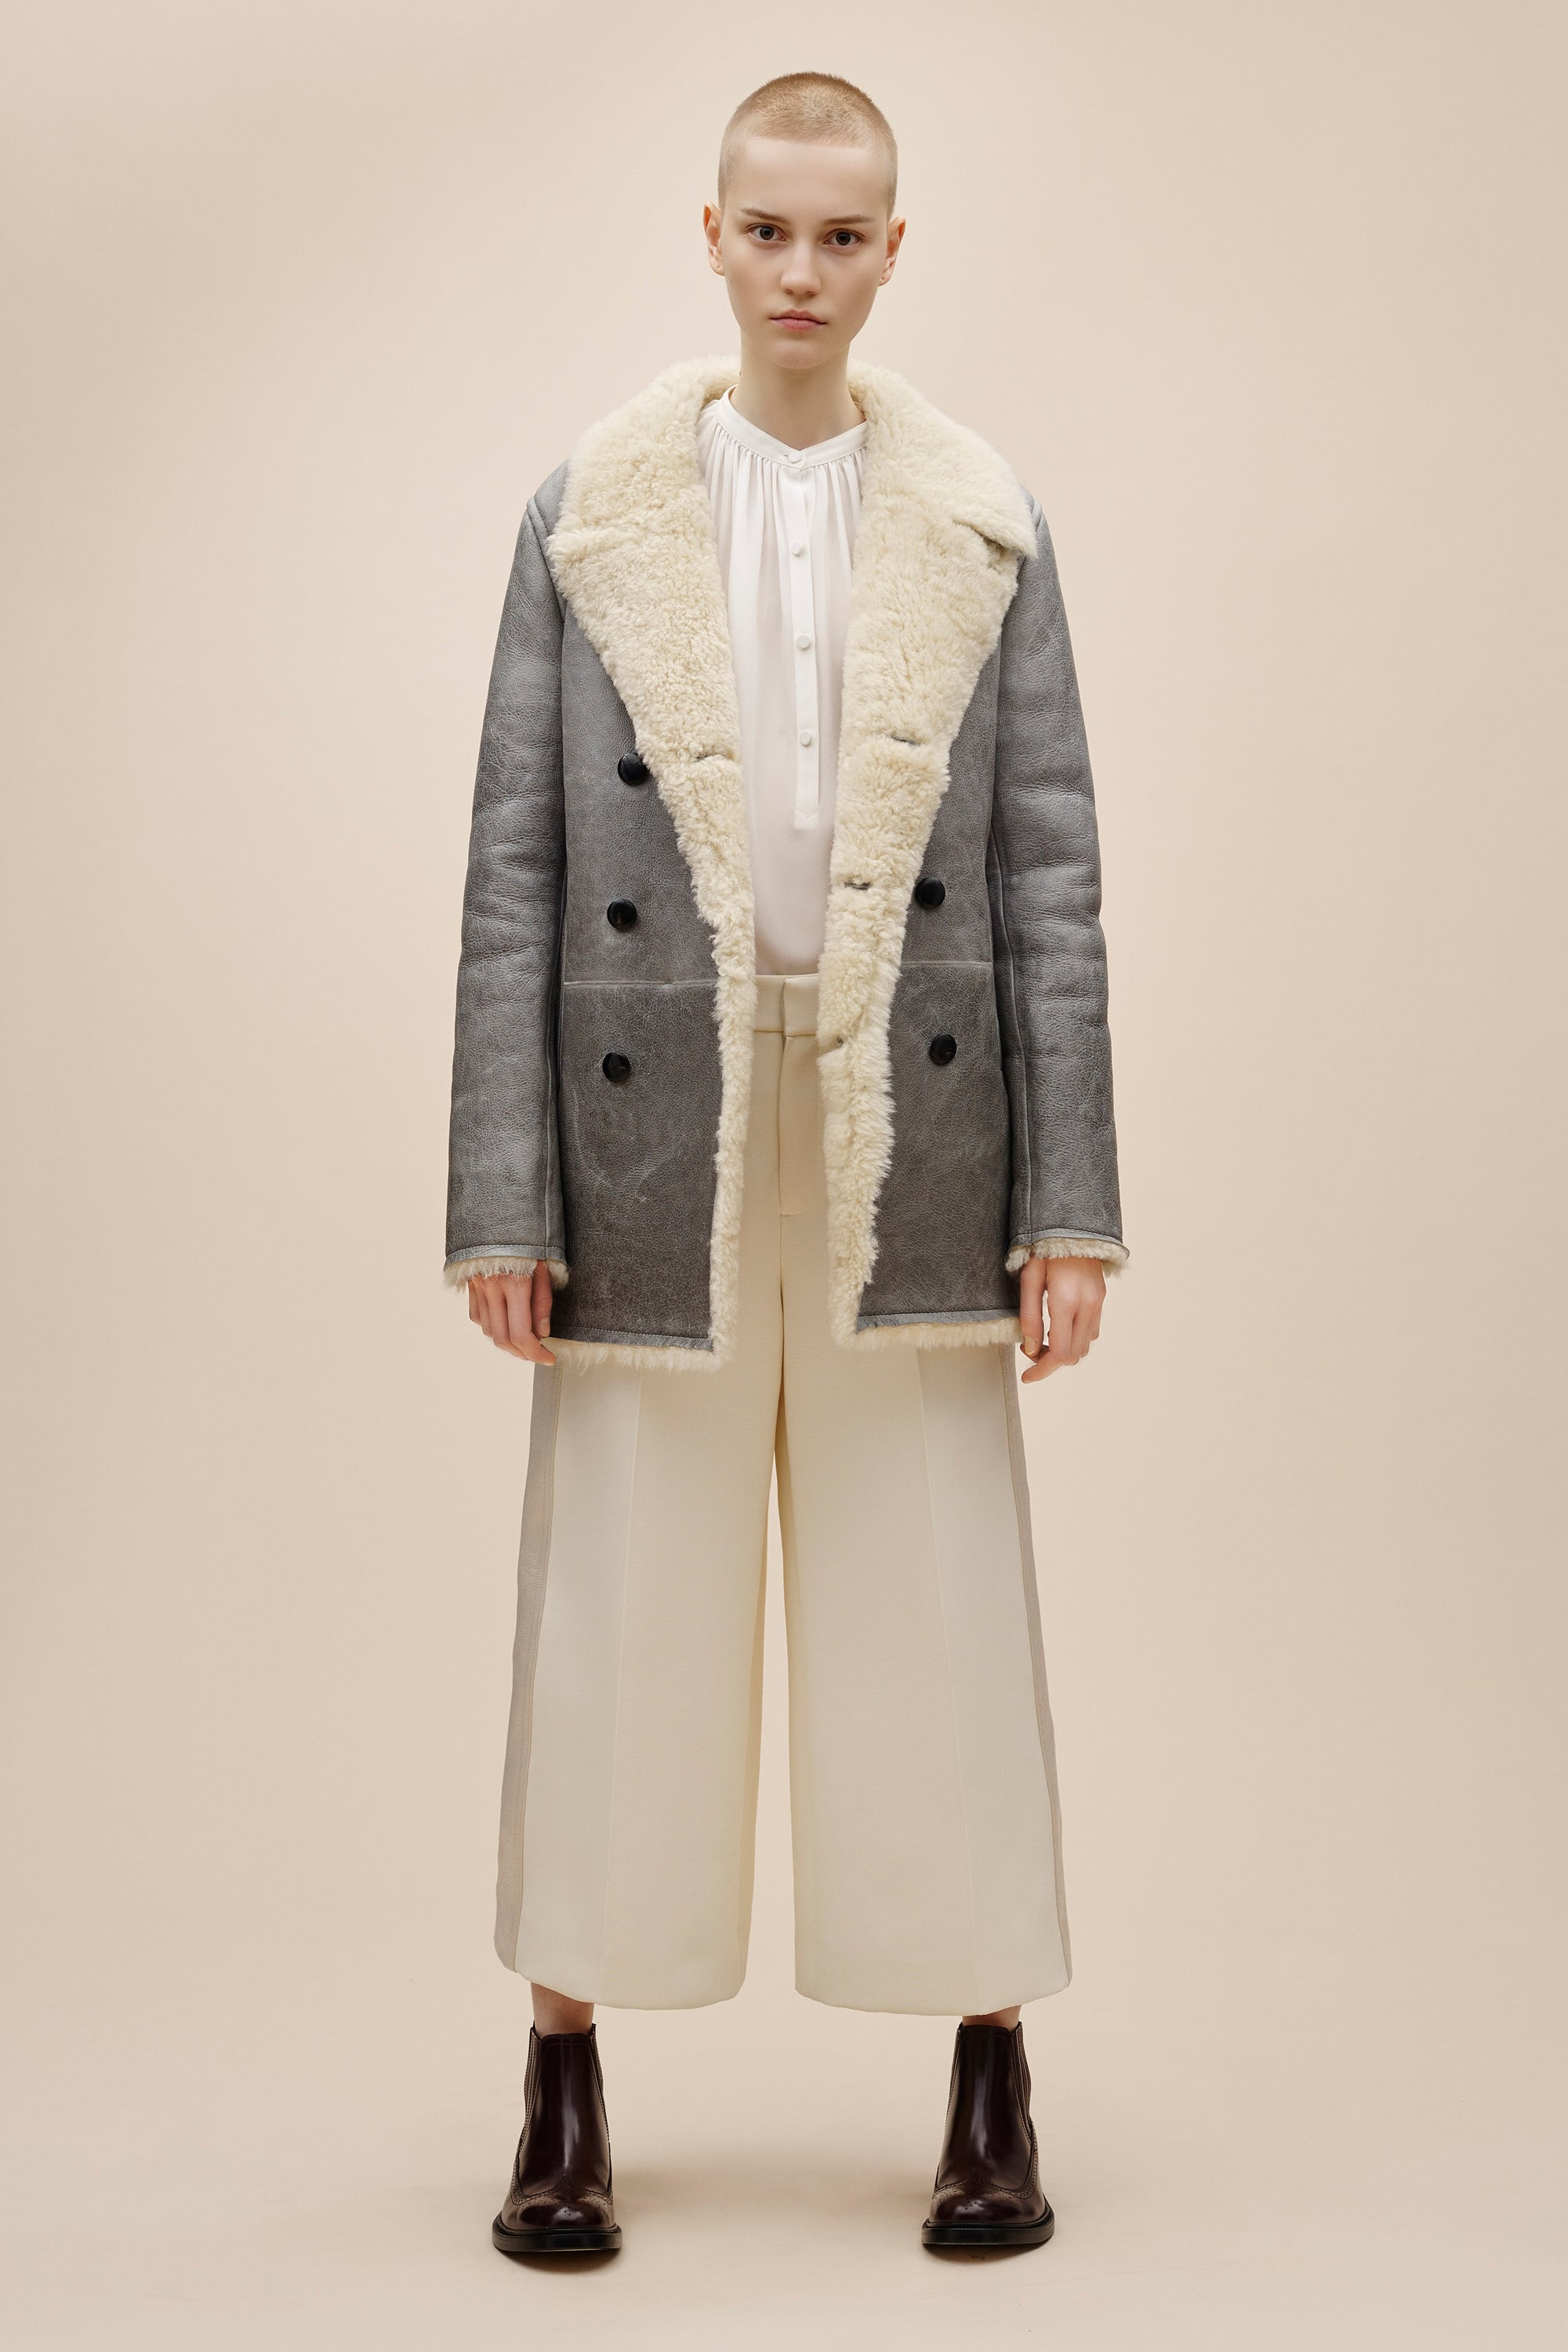 joseph-pre-fall-2016-lookbook-06.jpg